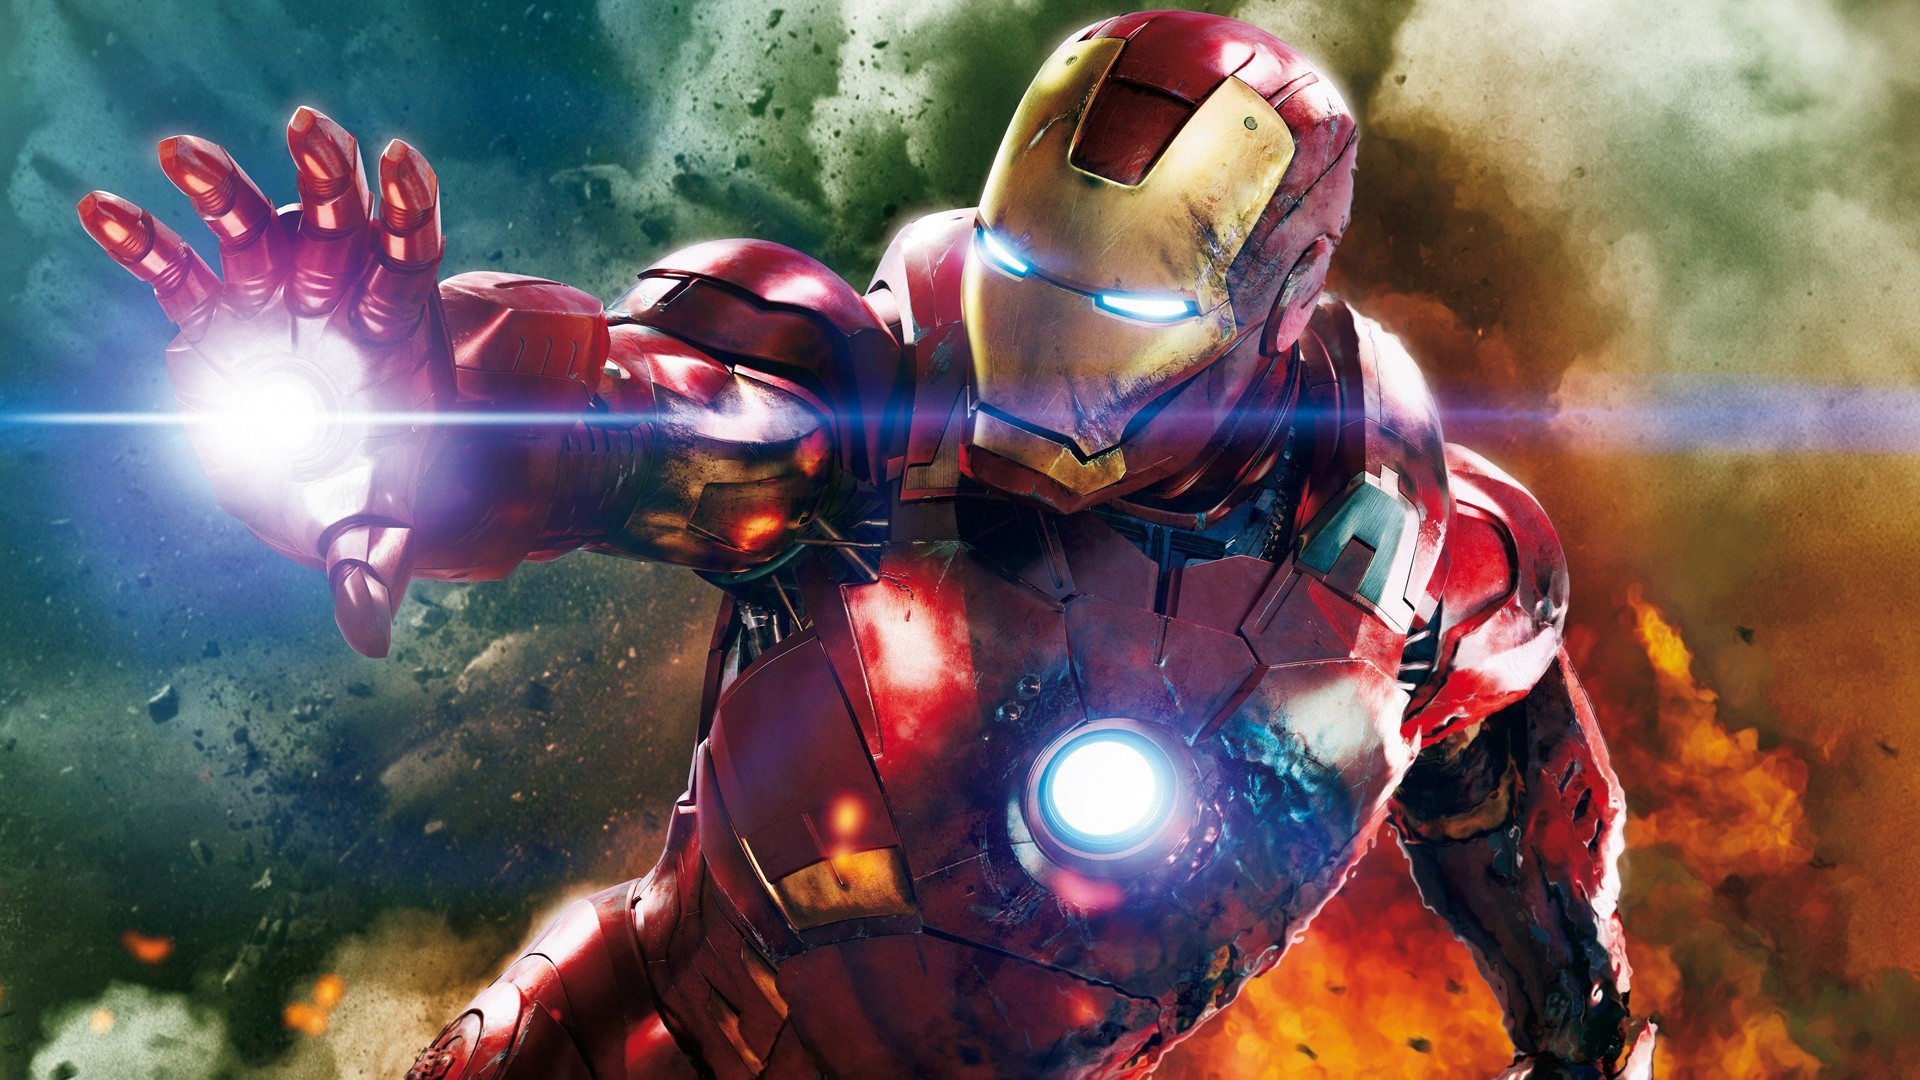 Cool Wallpapers Iron Man 3 HD Wallpaper Cool Wallpapers Iron Man 3 1920x1080